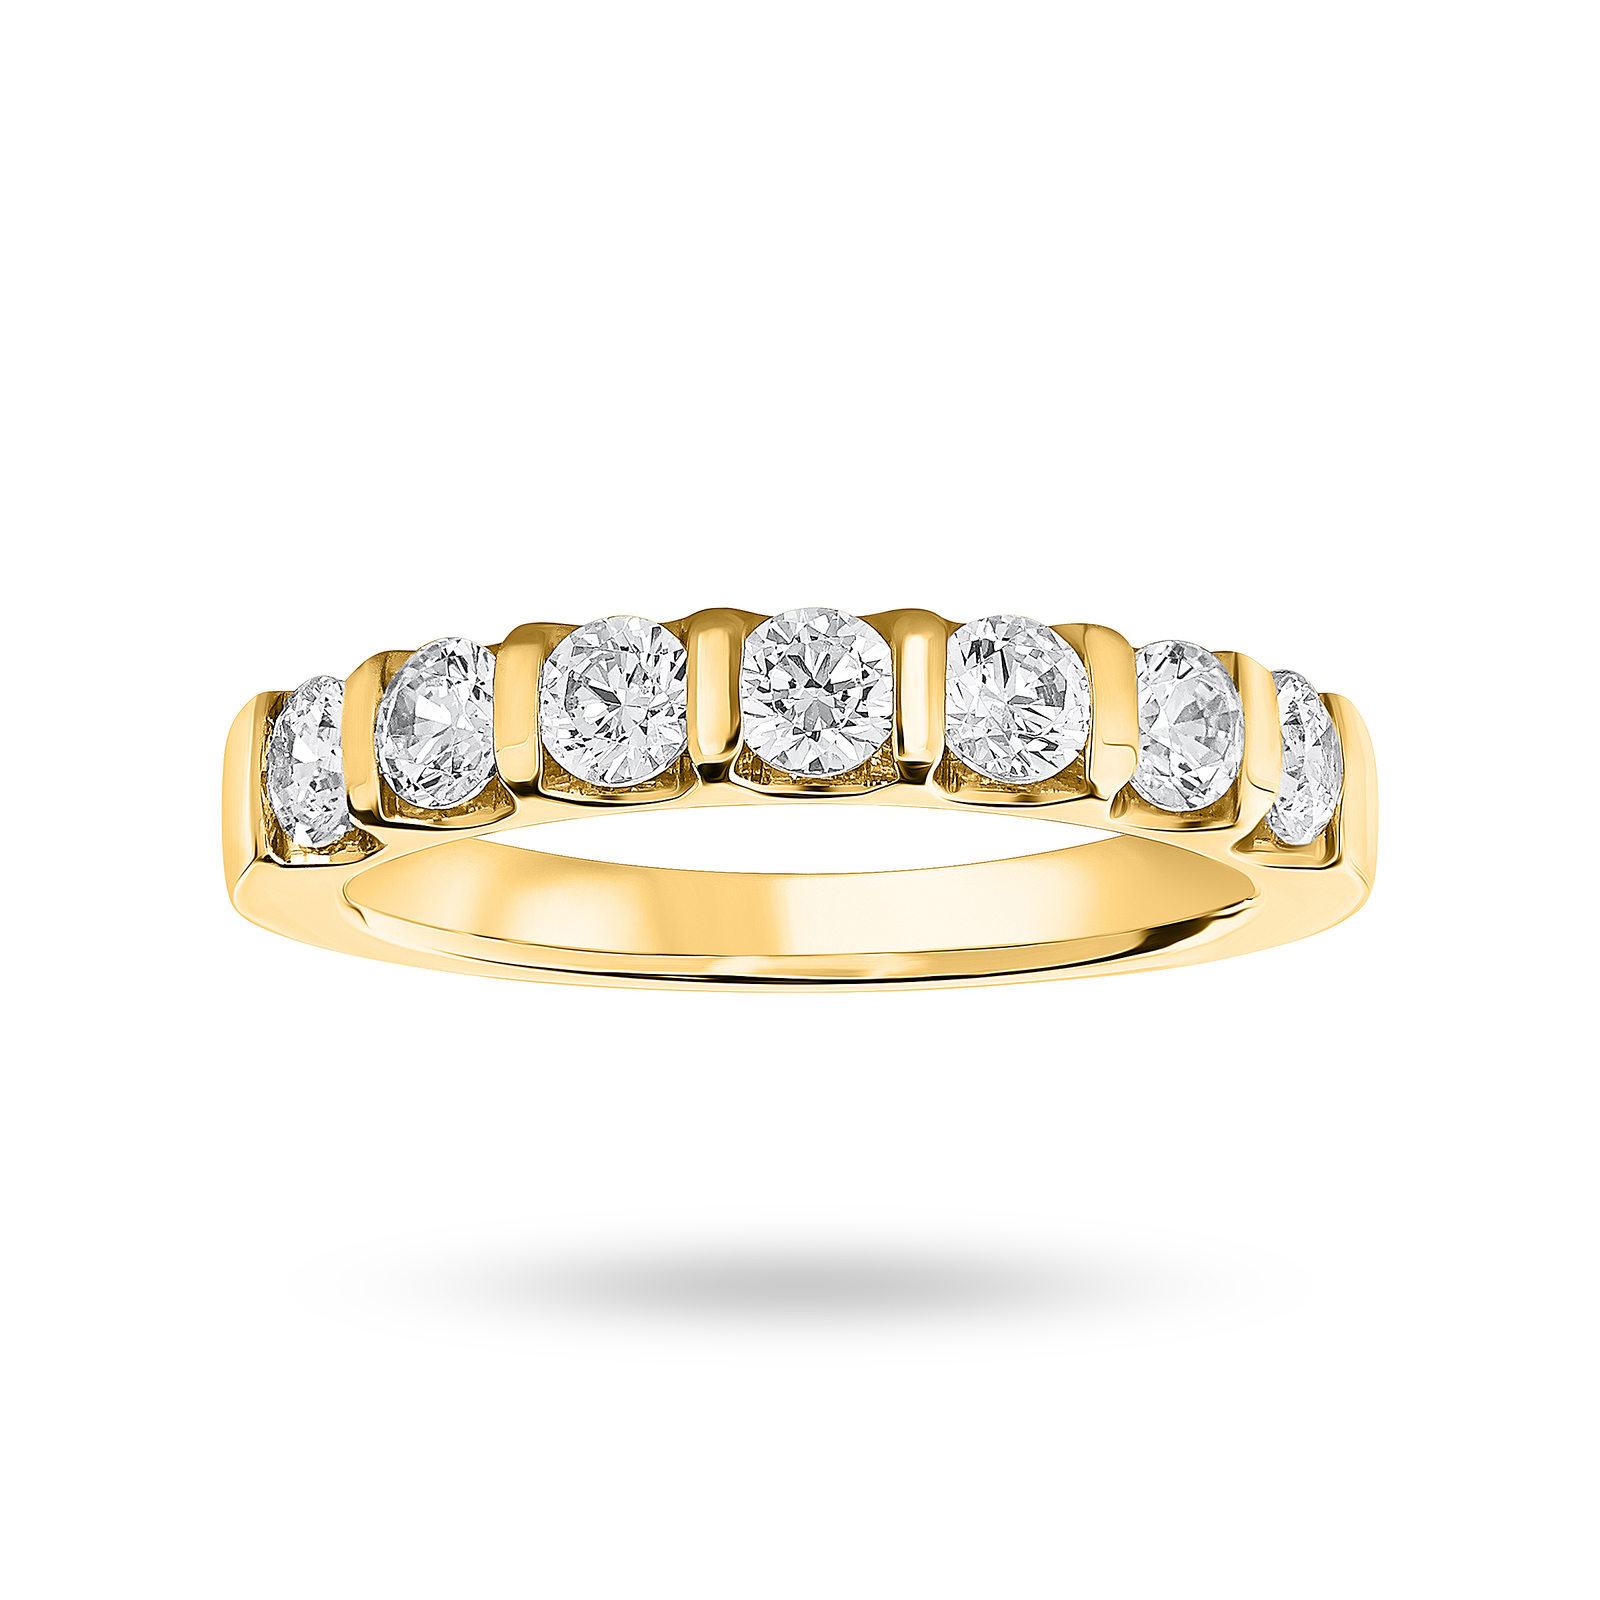 18 Carat Yellow Gold 0.77 Carat Brilliant Cut Bar Half Eternity Ring